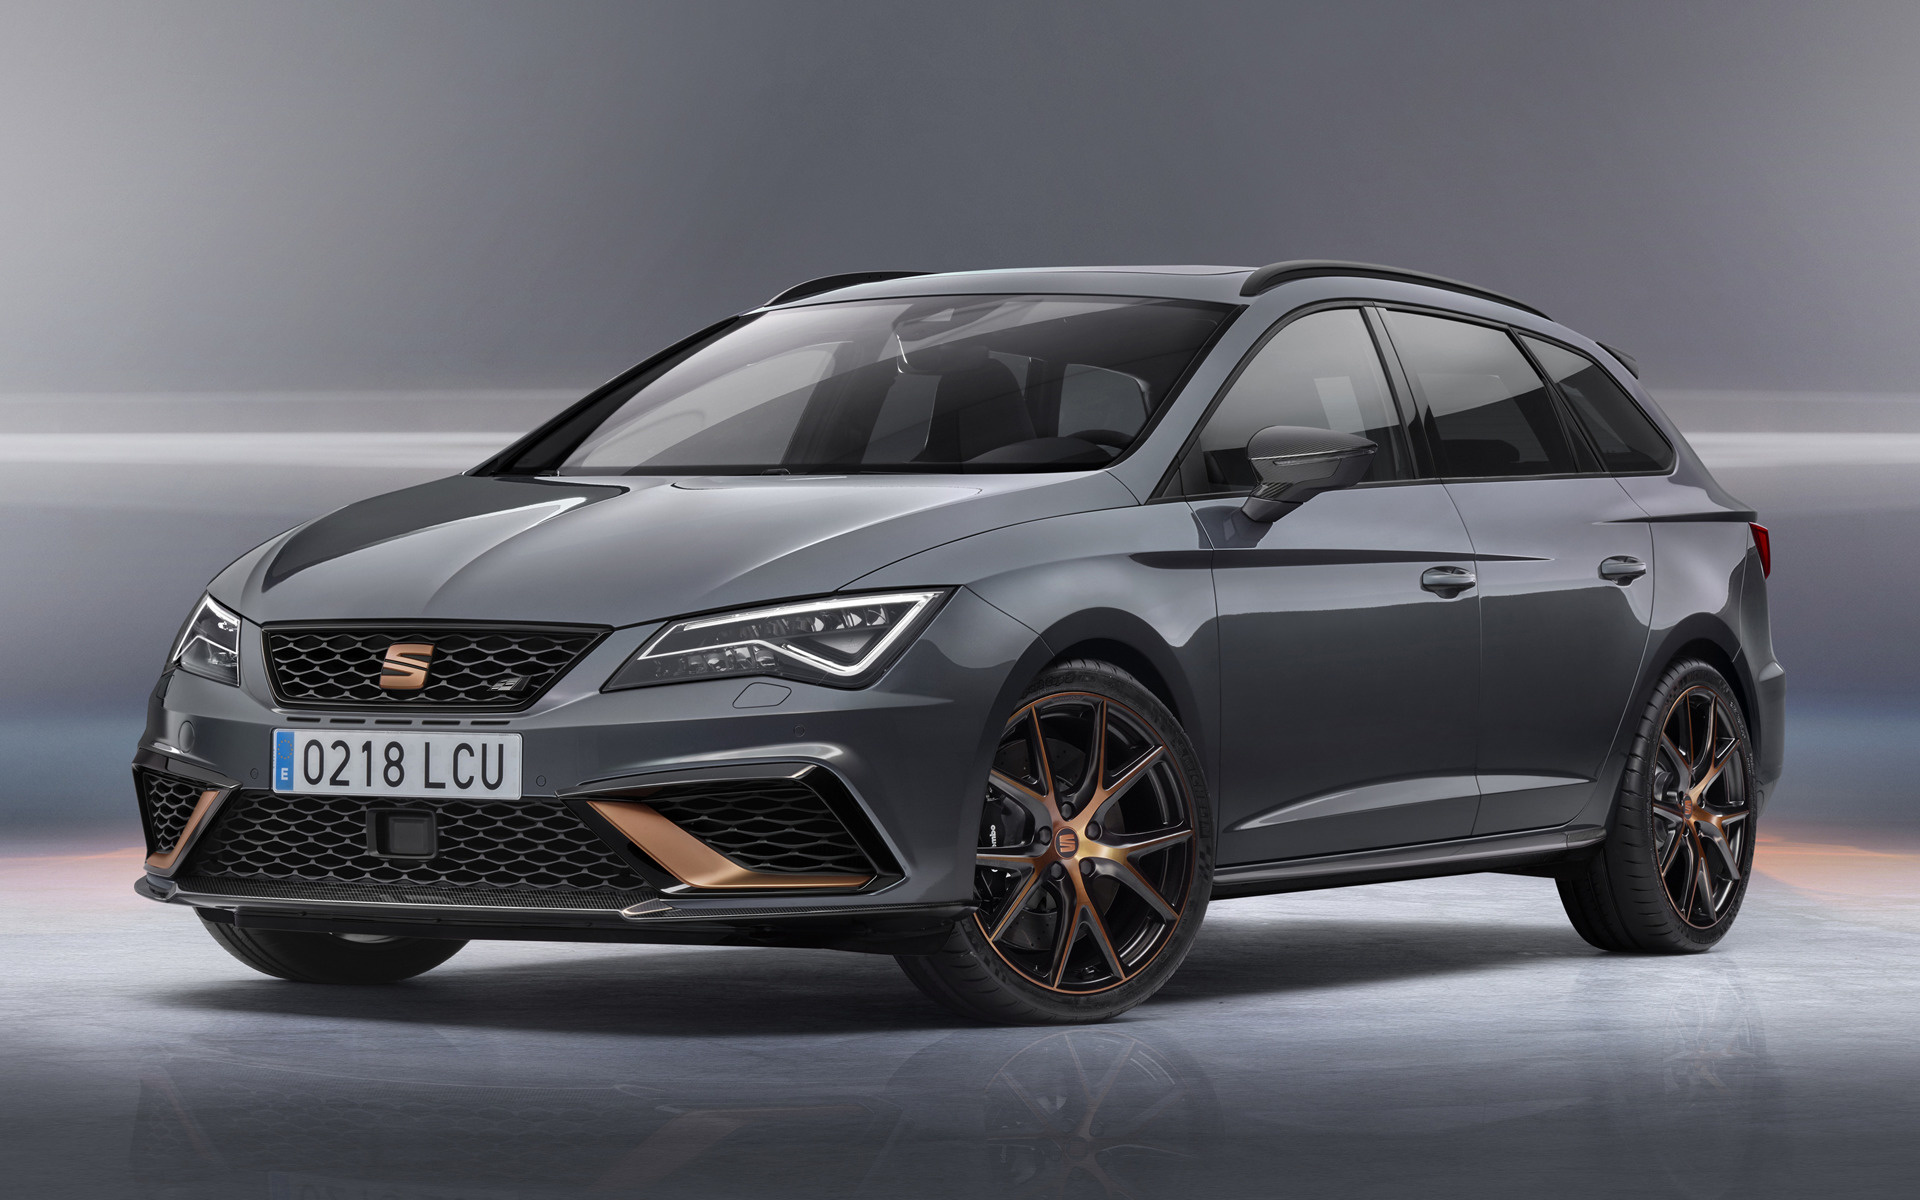 2018 seat leon st cupra r wallpapers and hd images car. Black Bedroom Furniture Sets. Home Design Ideas